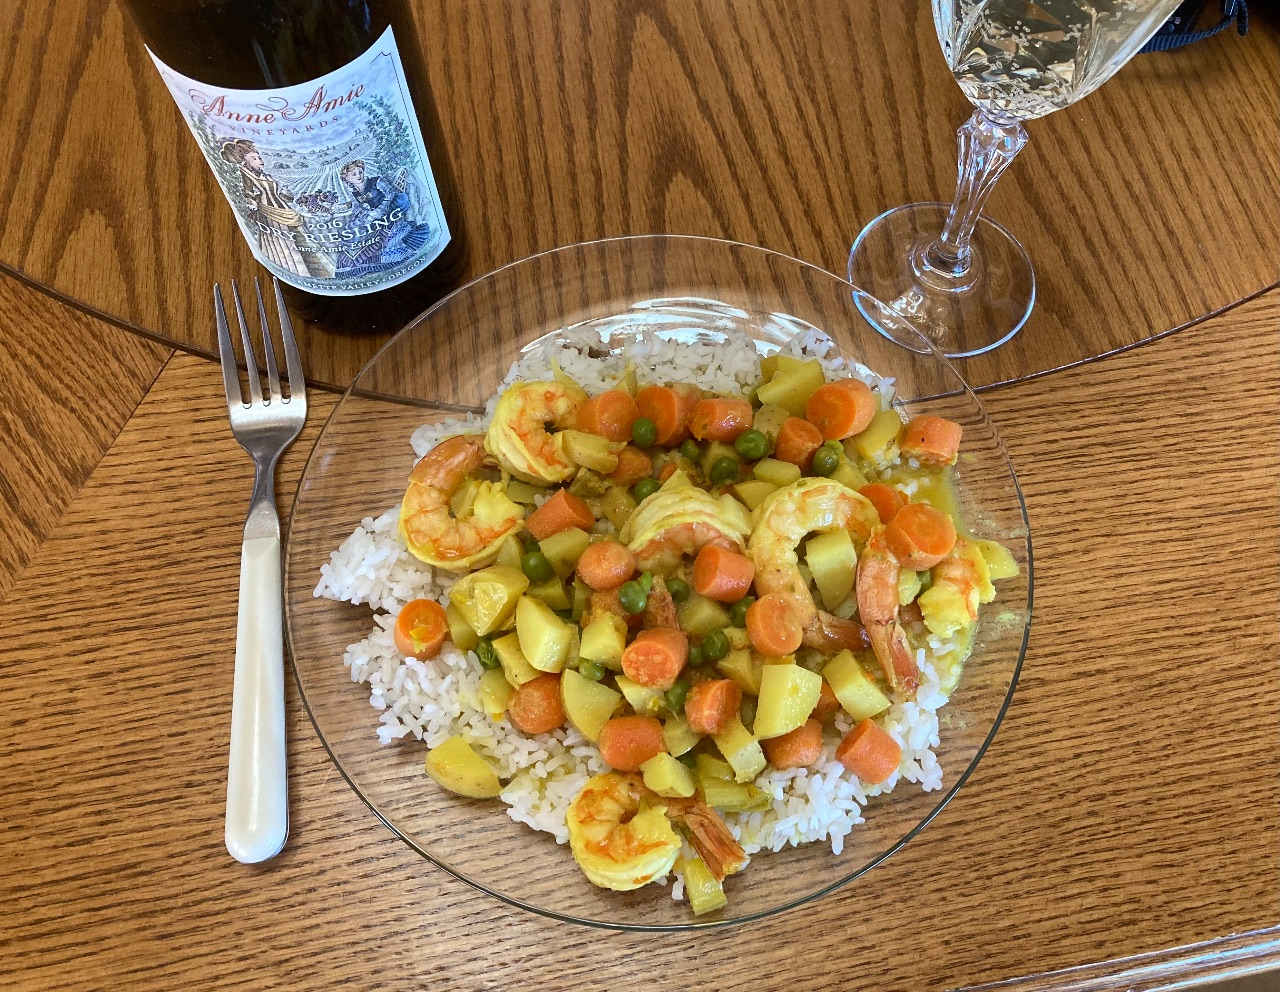 Curry shrimp with Anne Amie Dry Riesling.